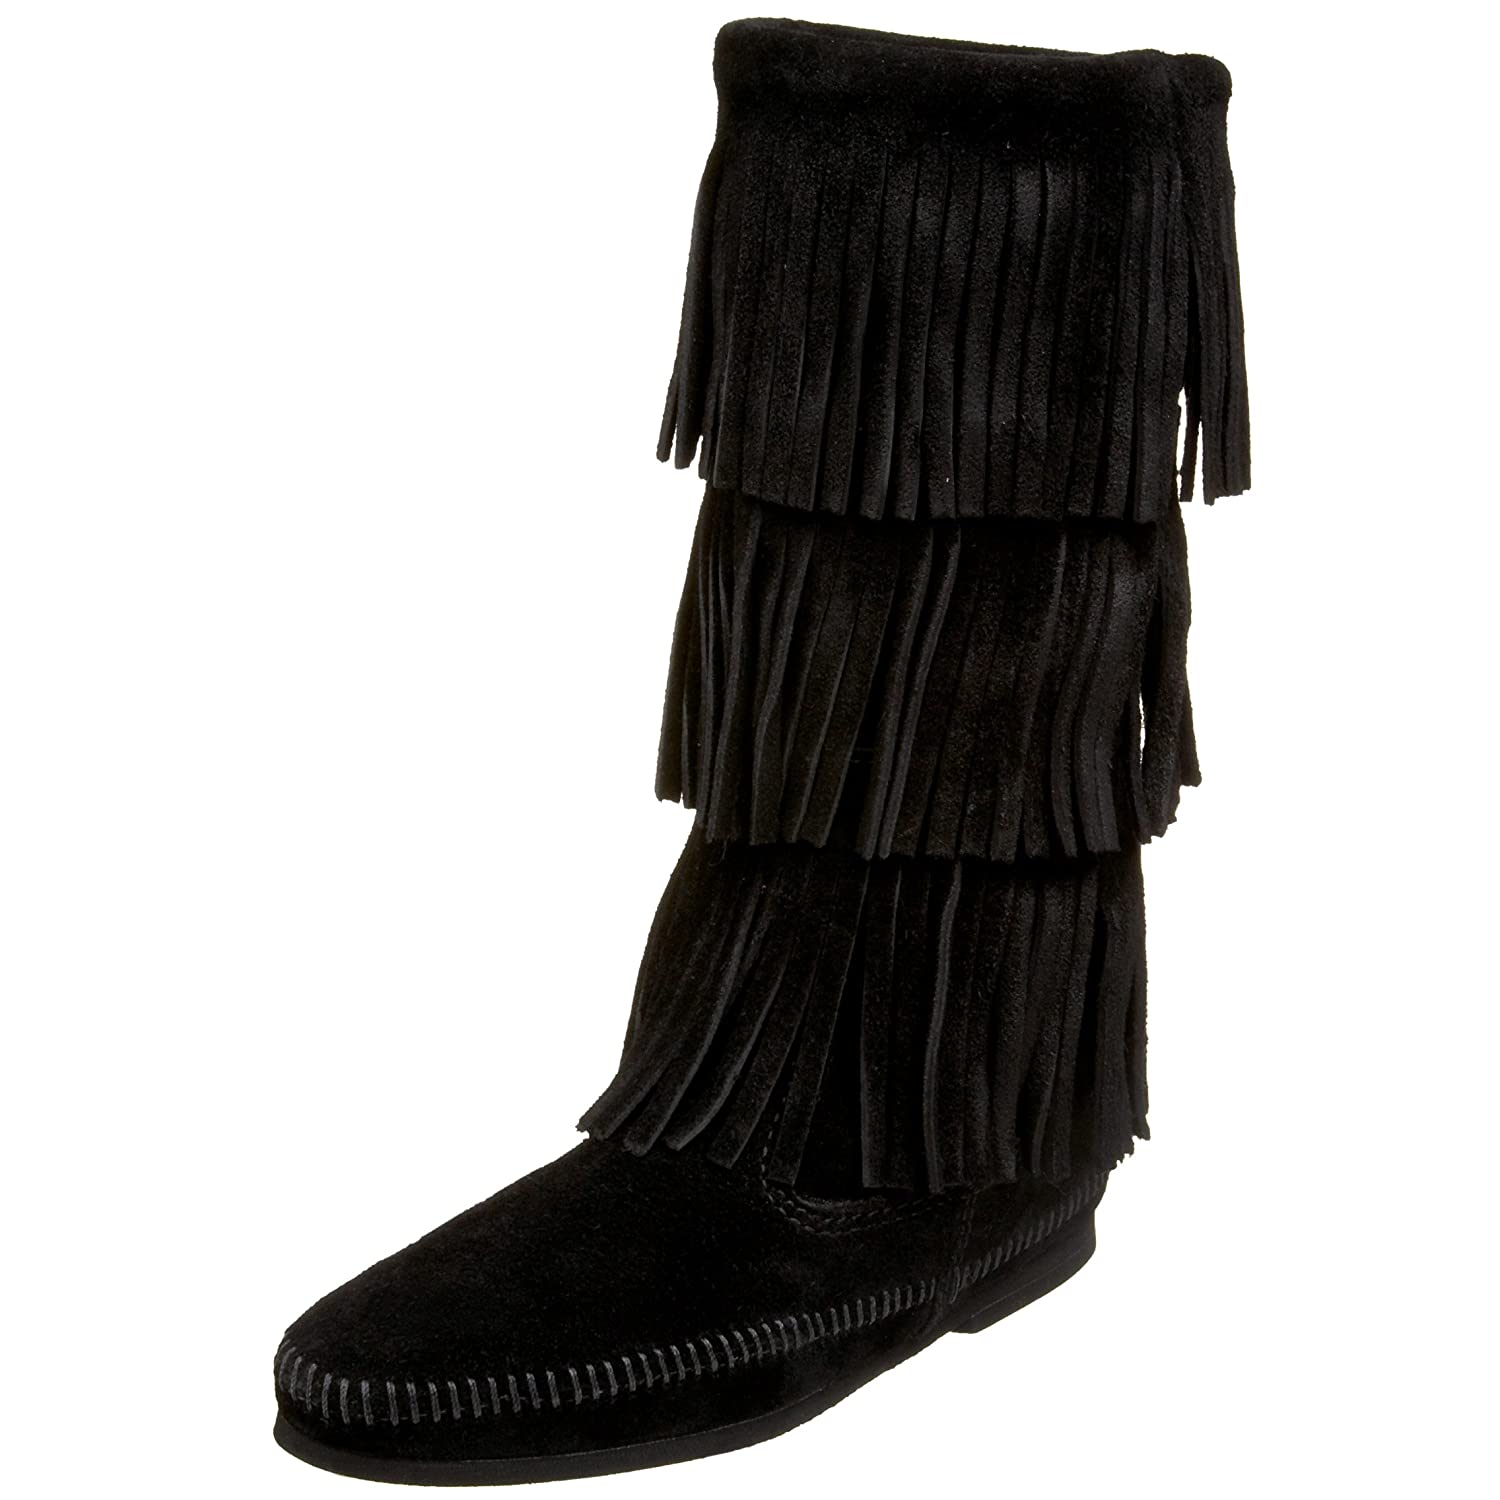 Minnetonka Women's 3-Layer Fringe Boot / B078KRZD3Q 37-38 M EU / Boot 7 B(M) US|Black 521347